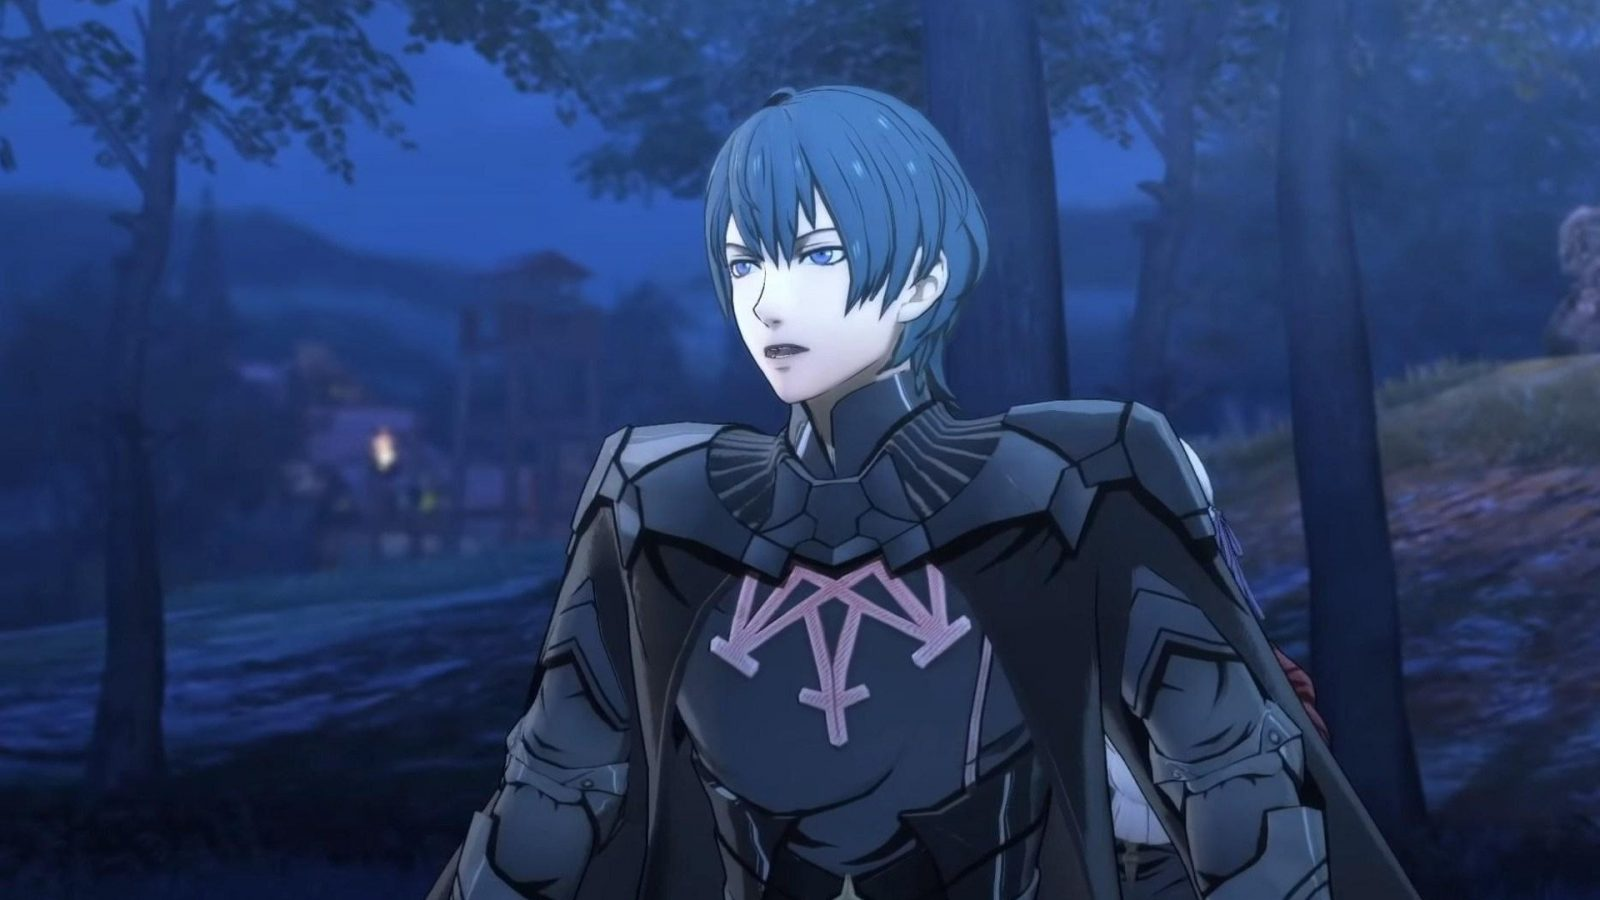 Fire Emblem Voice Actor to be Replaced Amid Sexual Abuse Allegations